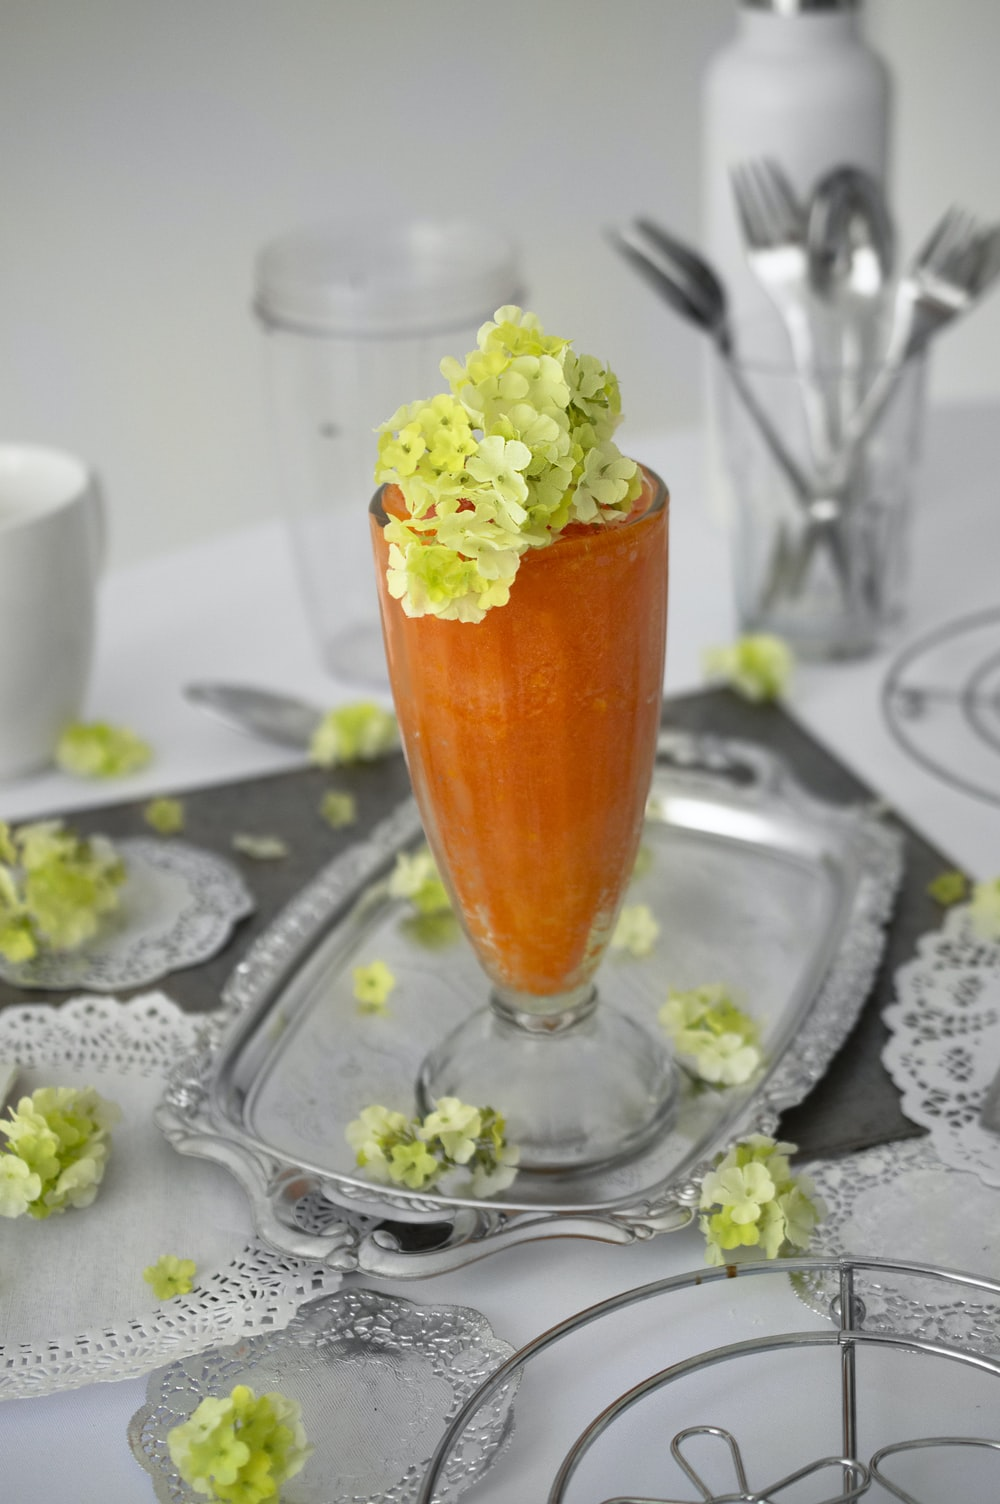 orange shake in footed drinking glass with petaled flowers